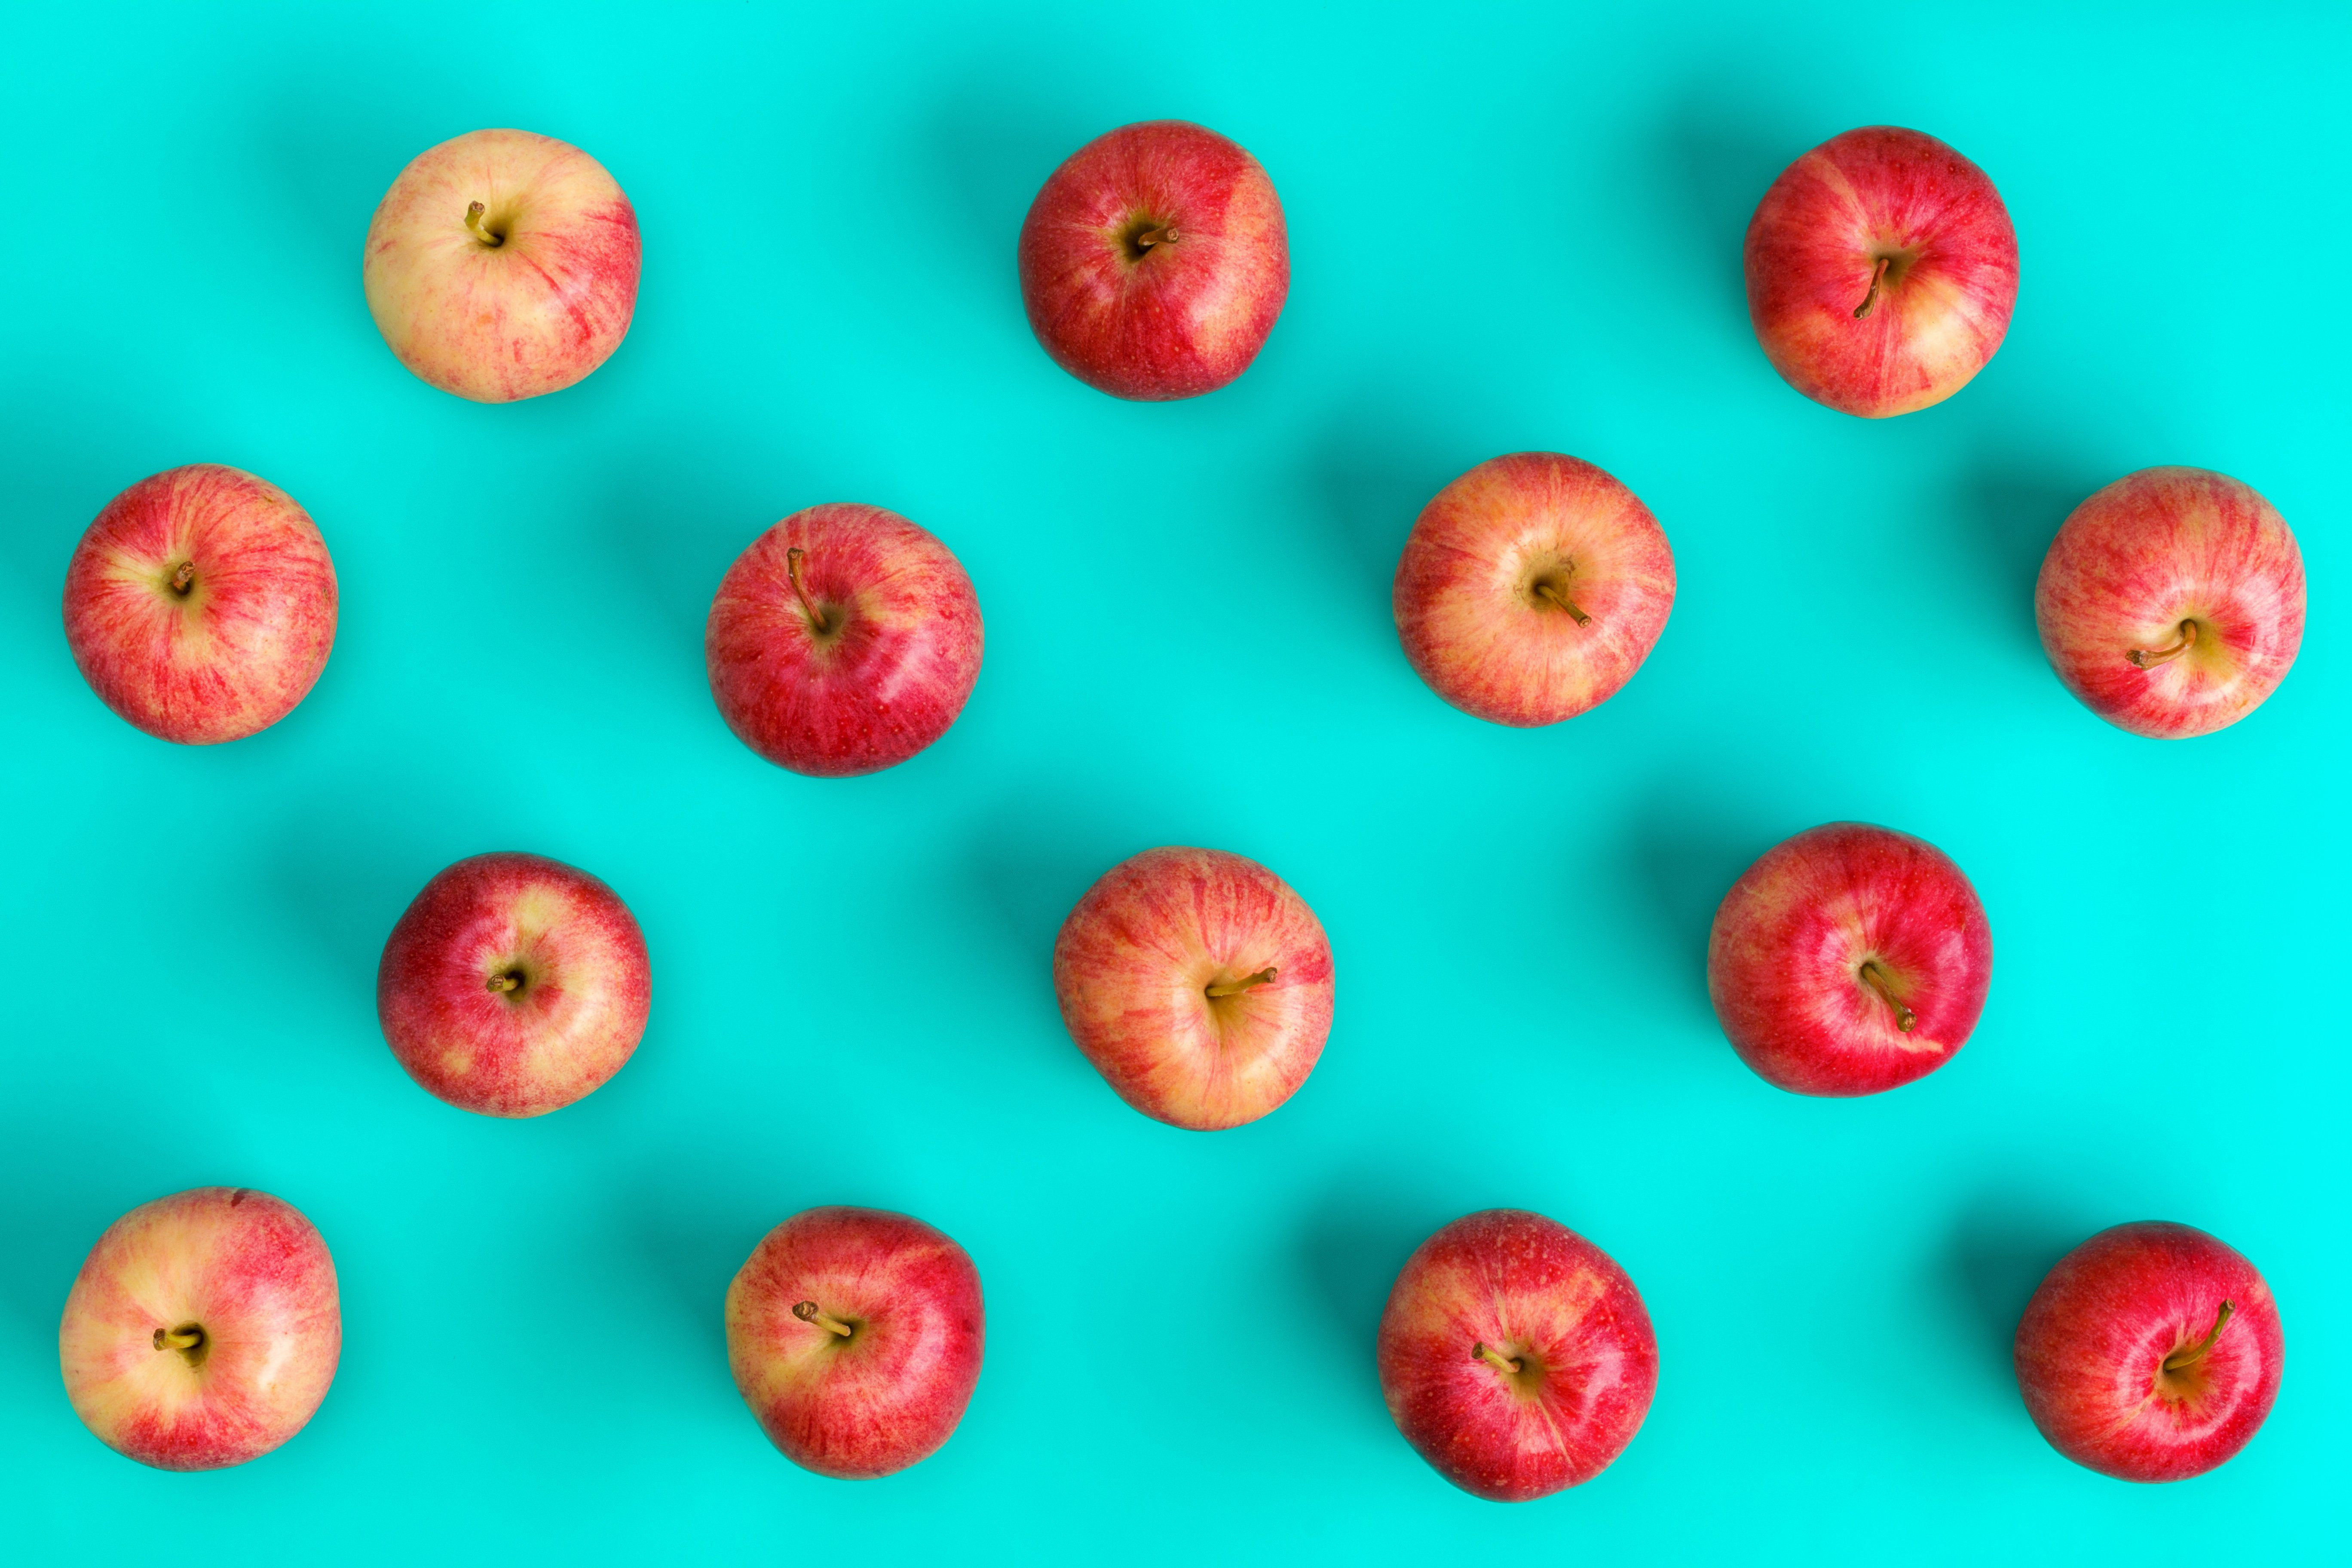 11 Facts You Never Knew About Apples